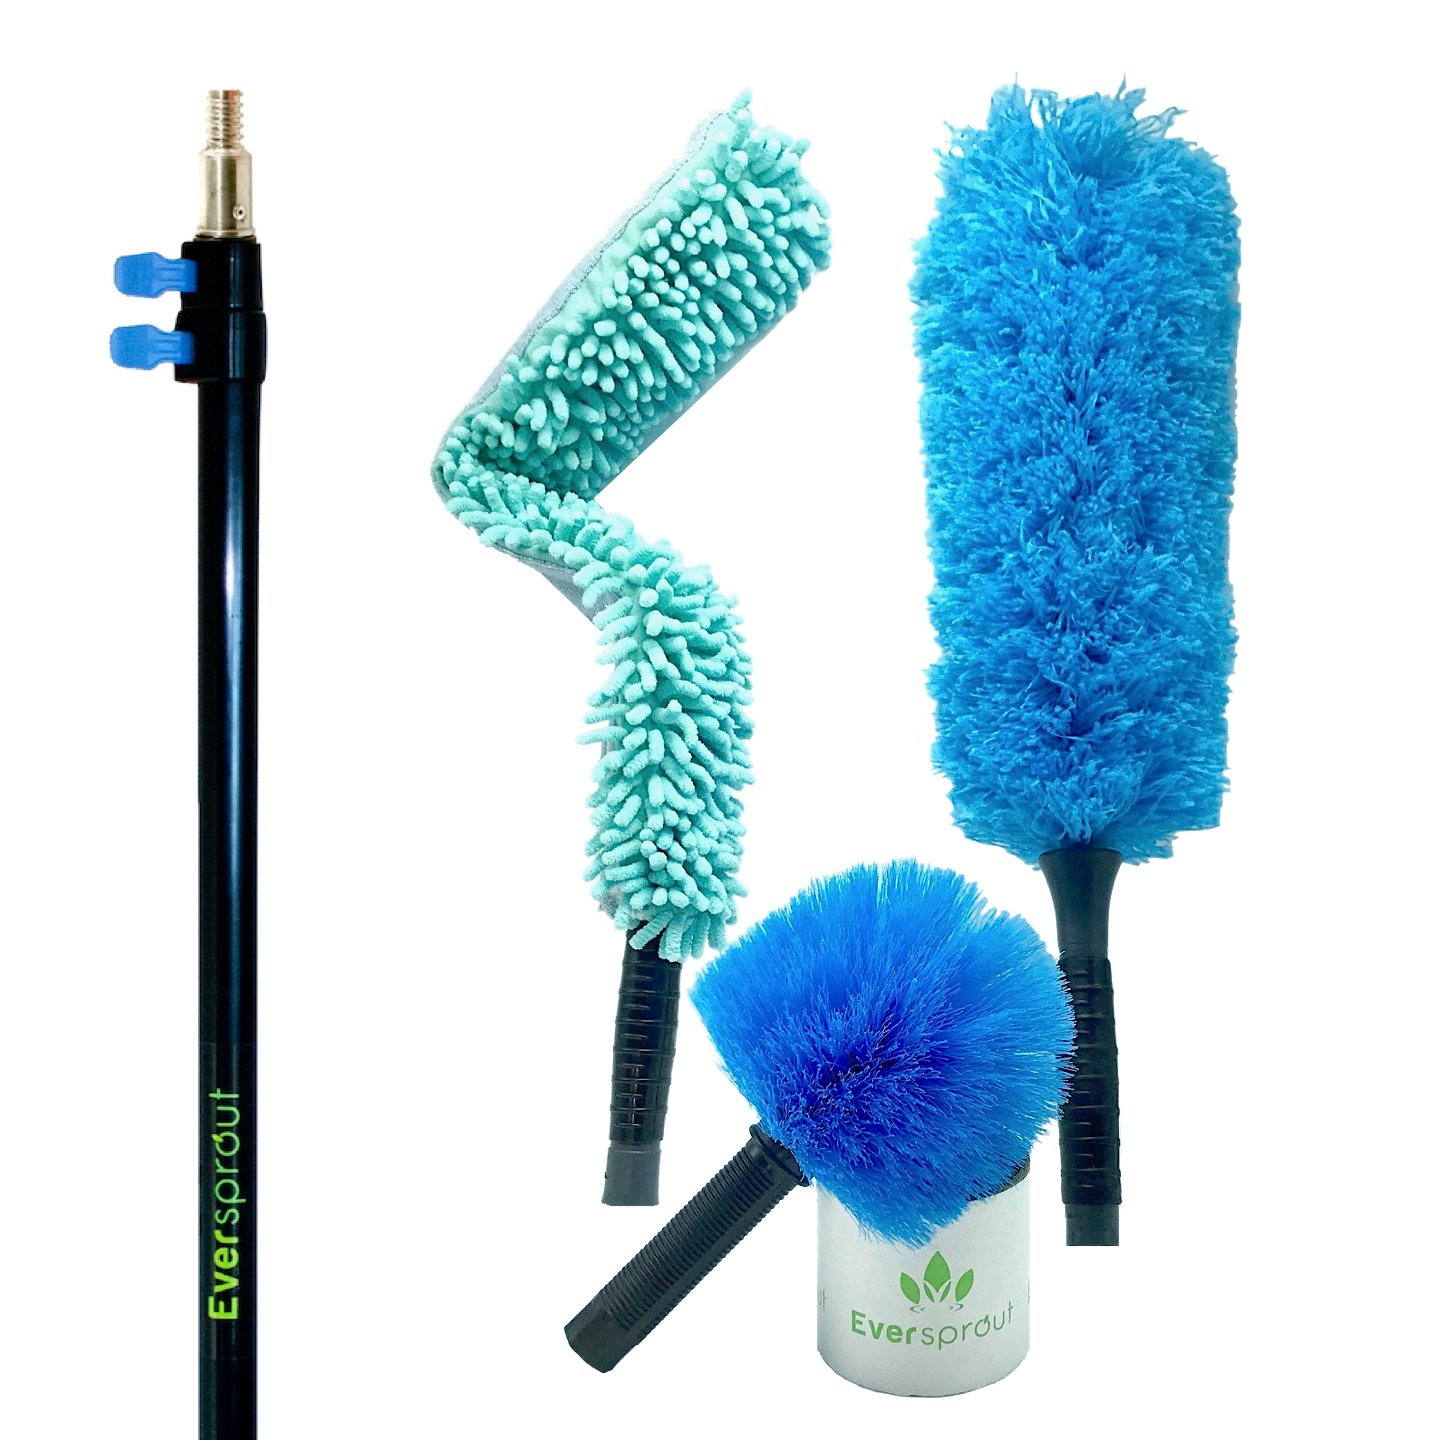 EVERSPROUT Duster 3-Pack with Pro-Pole (18-20 Foot Reach) | Hand-packaged Cobweb Duster, Microfiber Feather Duster, Flexible Microfiber Ceiling & Fan Duster | 12-Foot Aluminum Extension Pole (3-Stage)